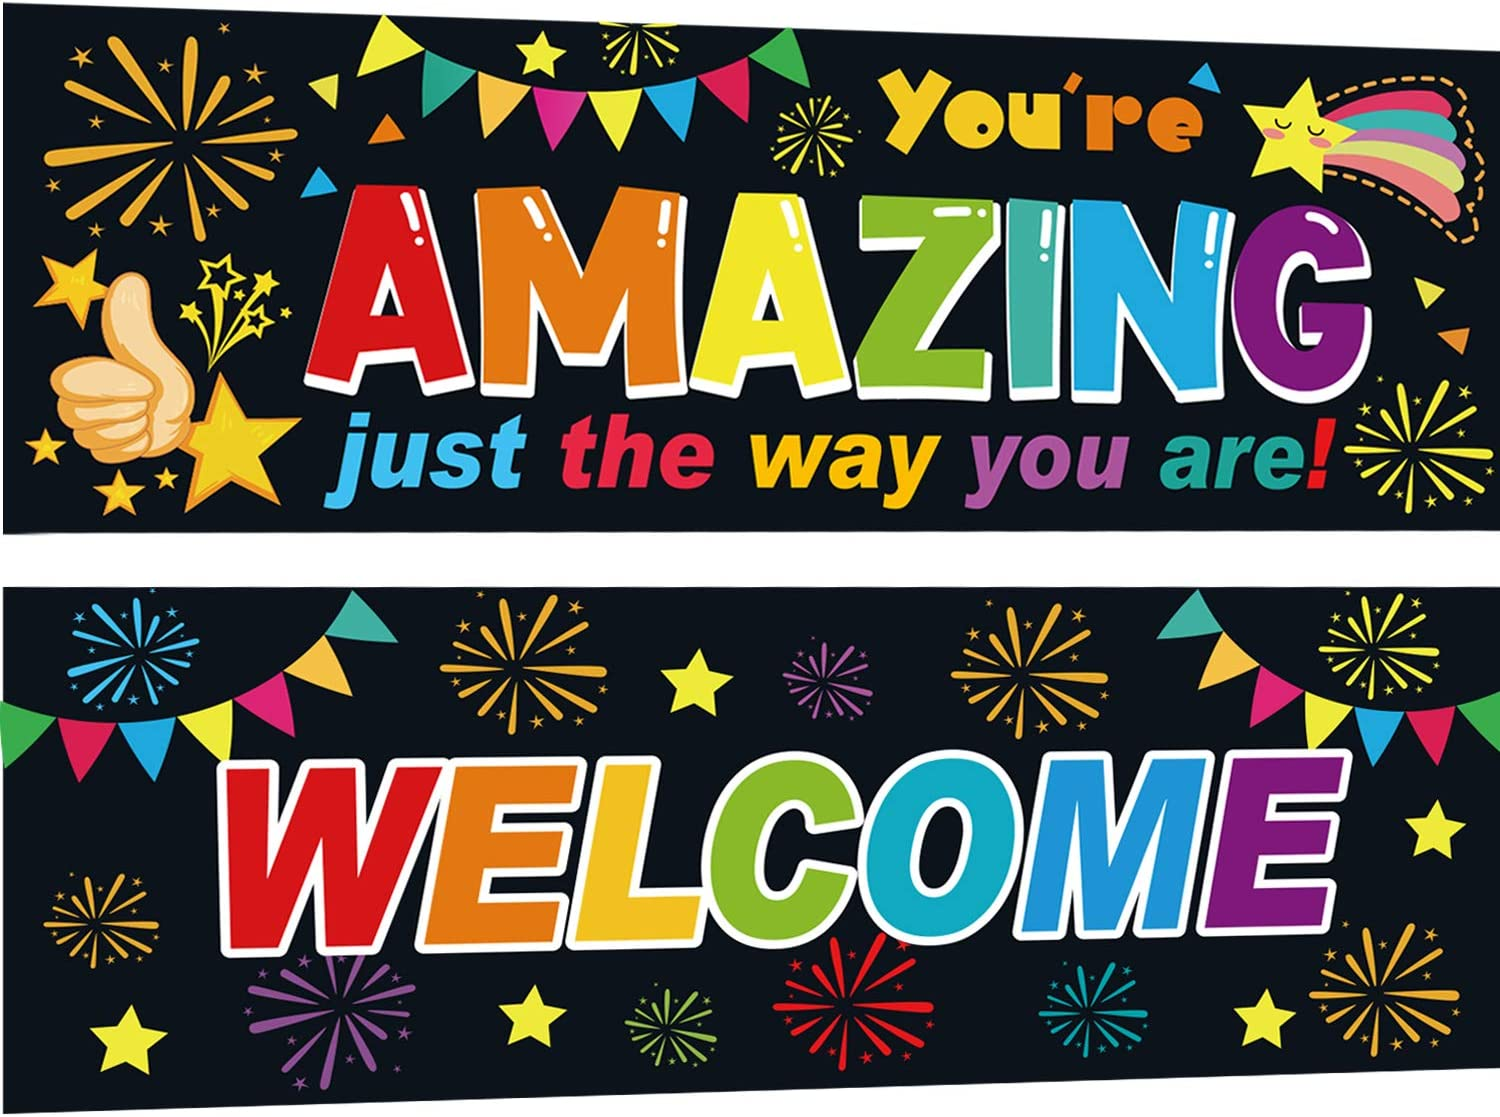 Yoklili Classroom Decorations Banner, Welcome & You are Amazing Banners Set for Teachers Bulletin Board Decoration Wall Decor, 13 x 39 inches